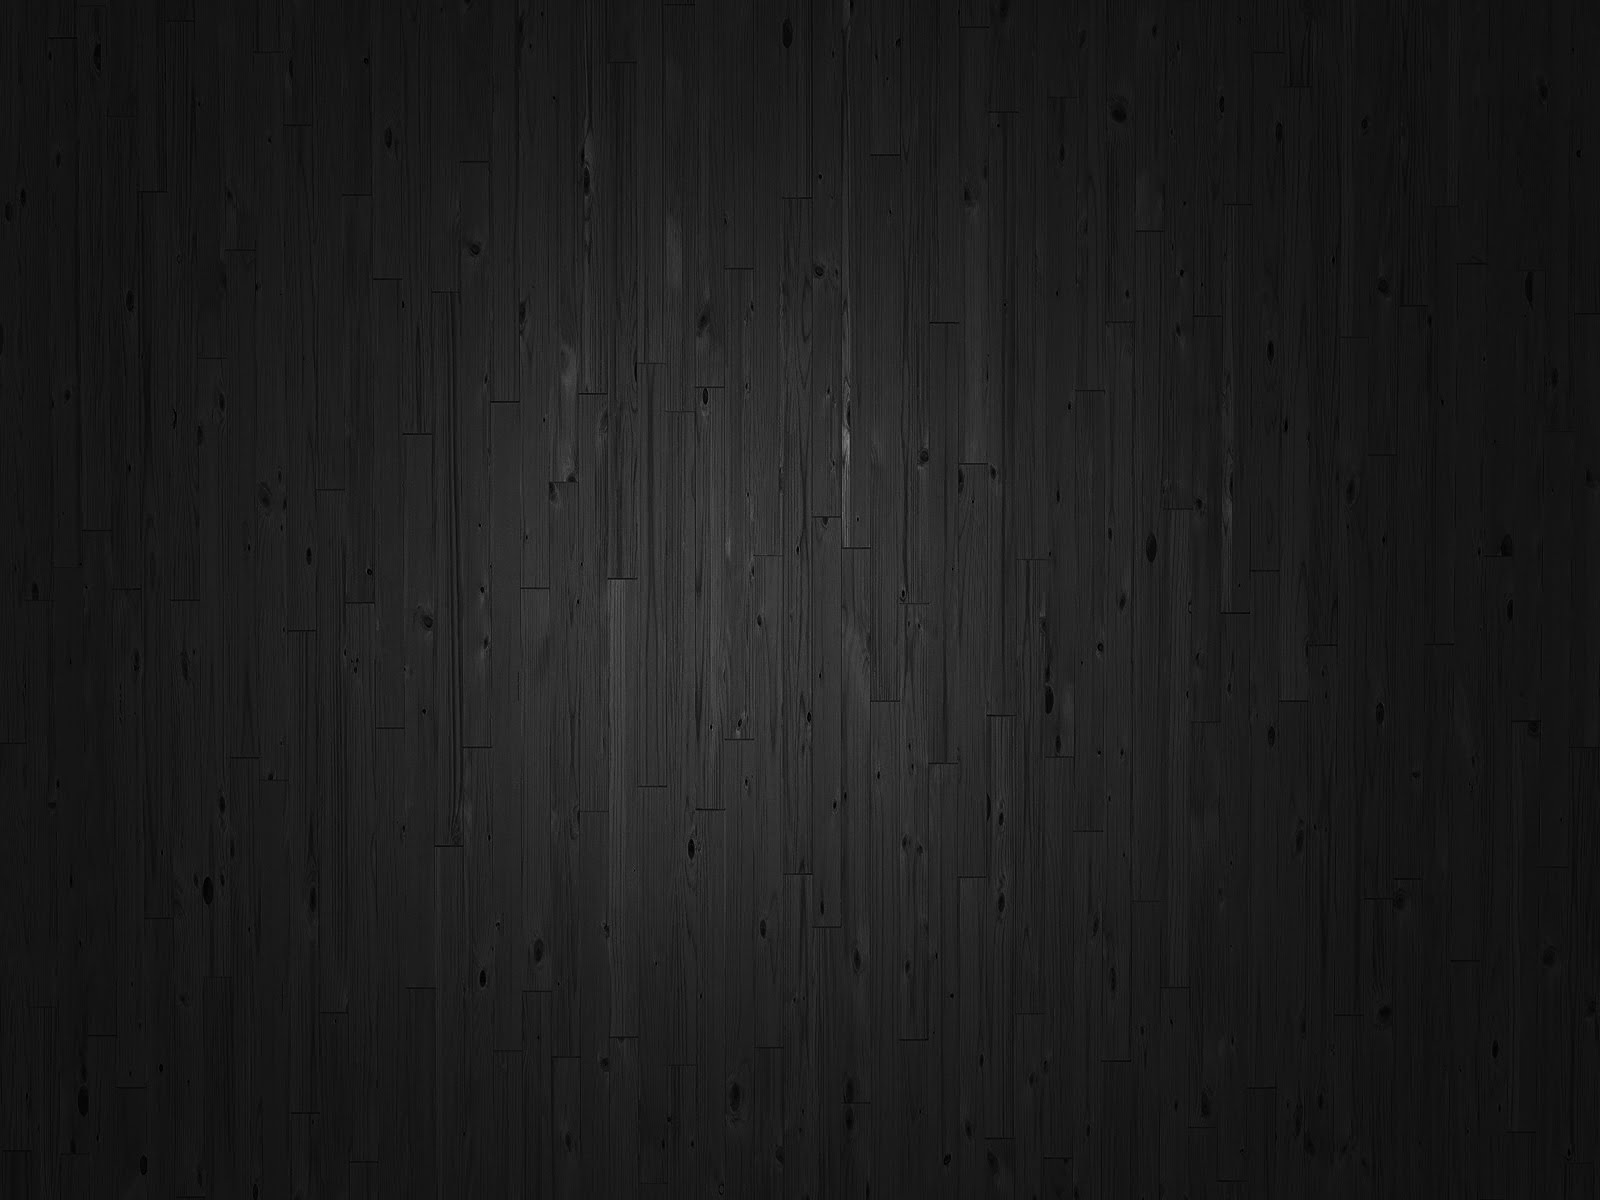 Wallpapers Box Black Wood HD Backgrounds High Definition Wallpapers 1600x1200